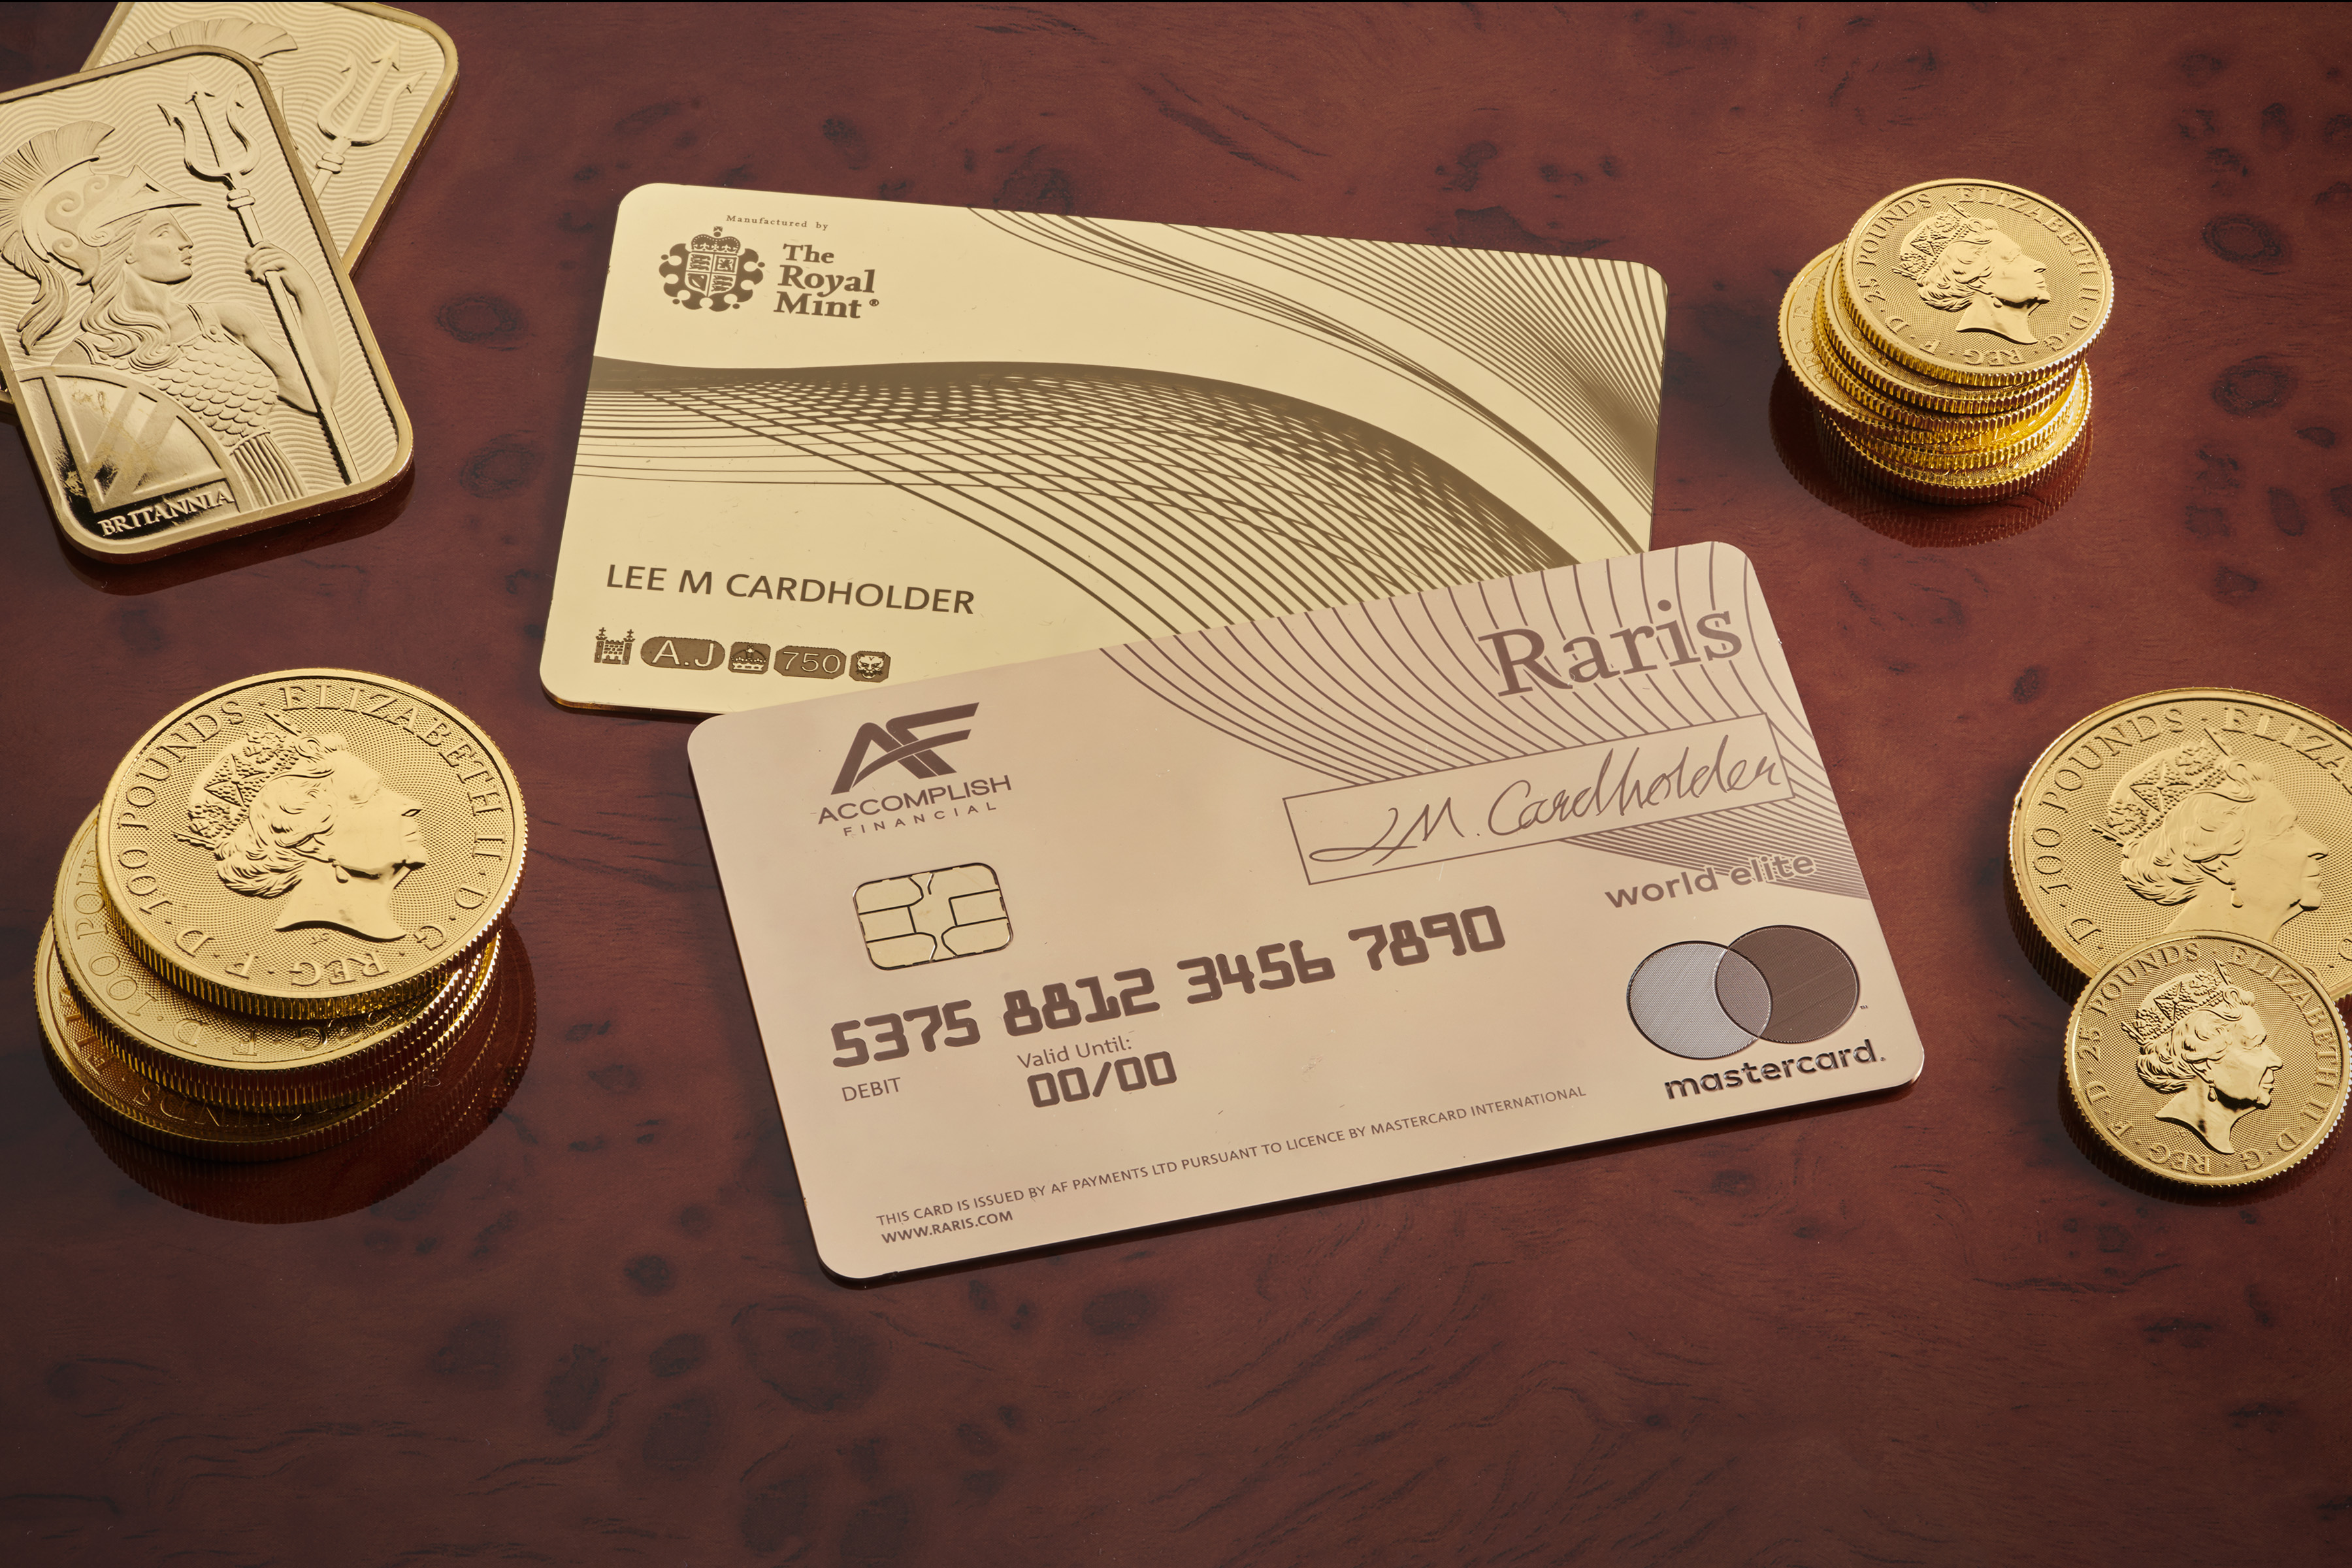 Royal Mint gold card